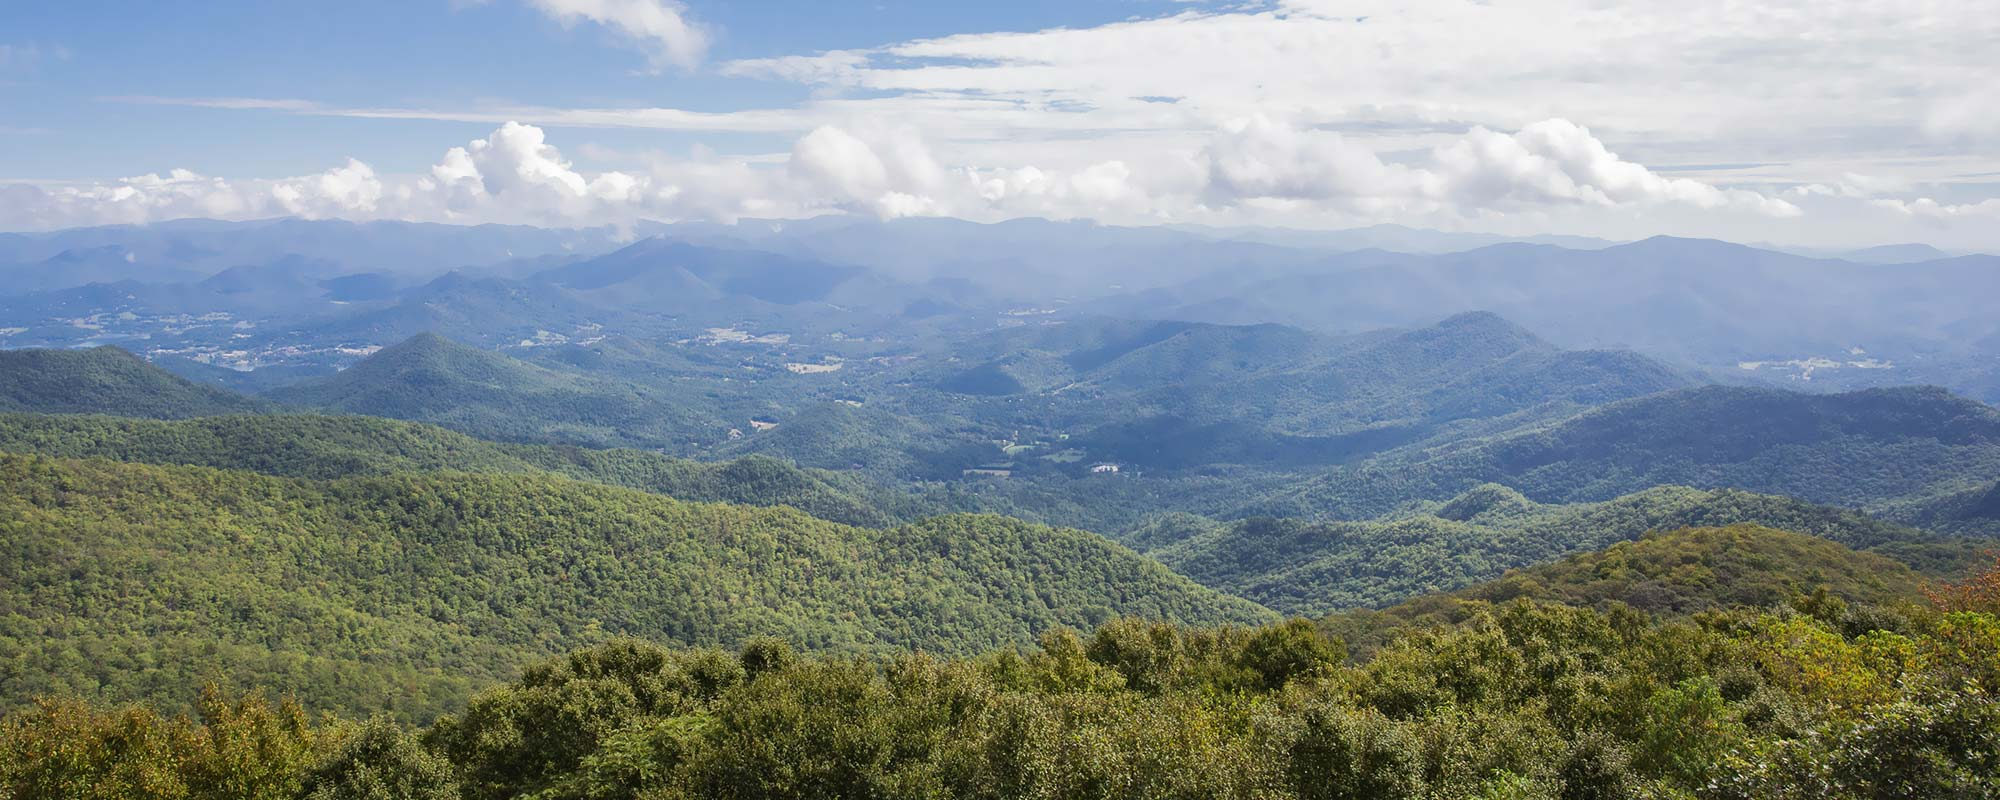 Brasstown Bald Summit Trail